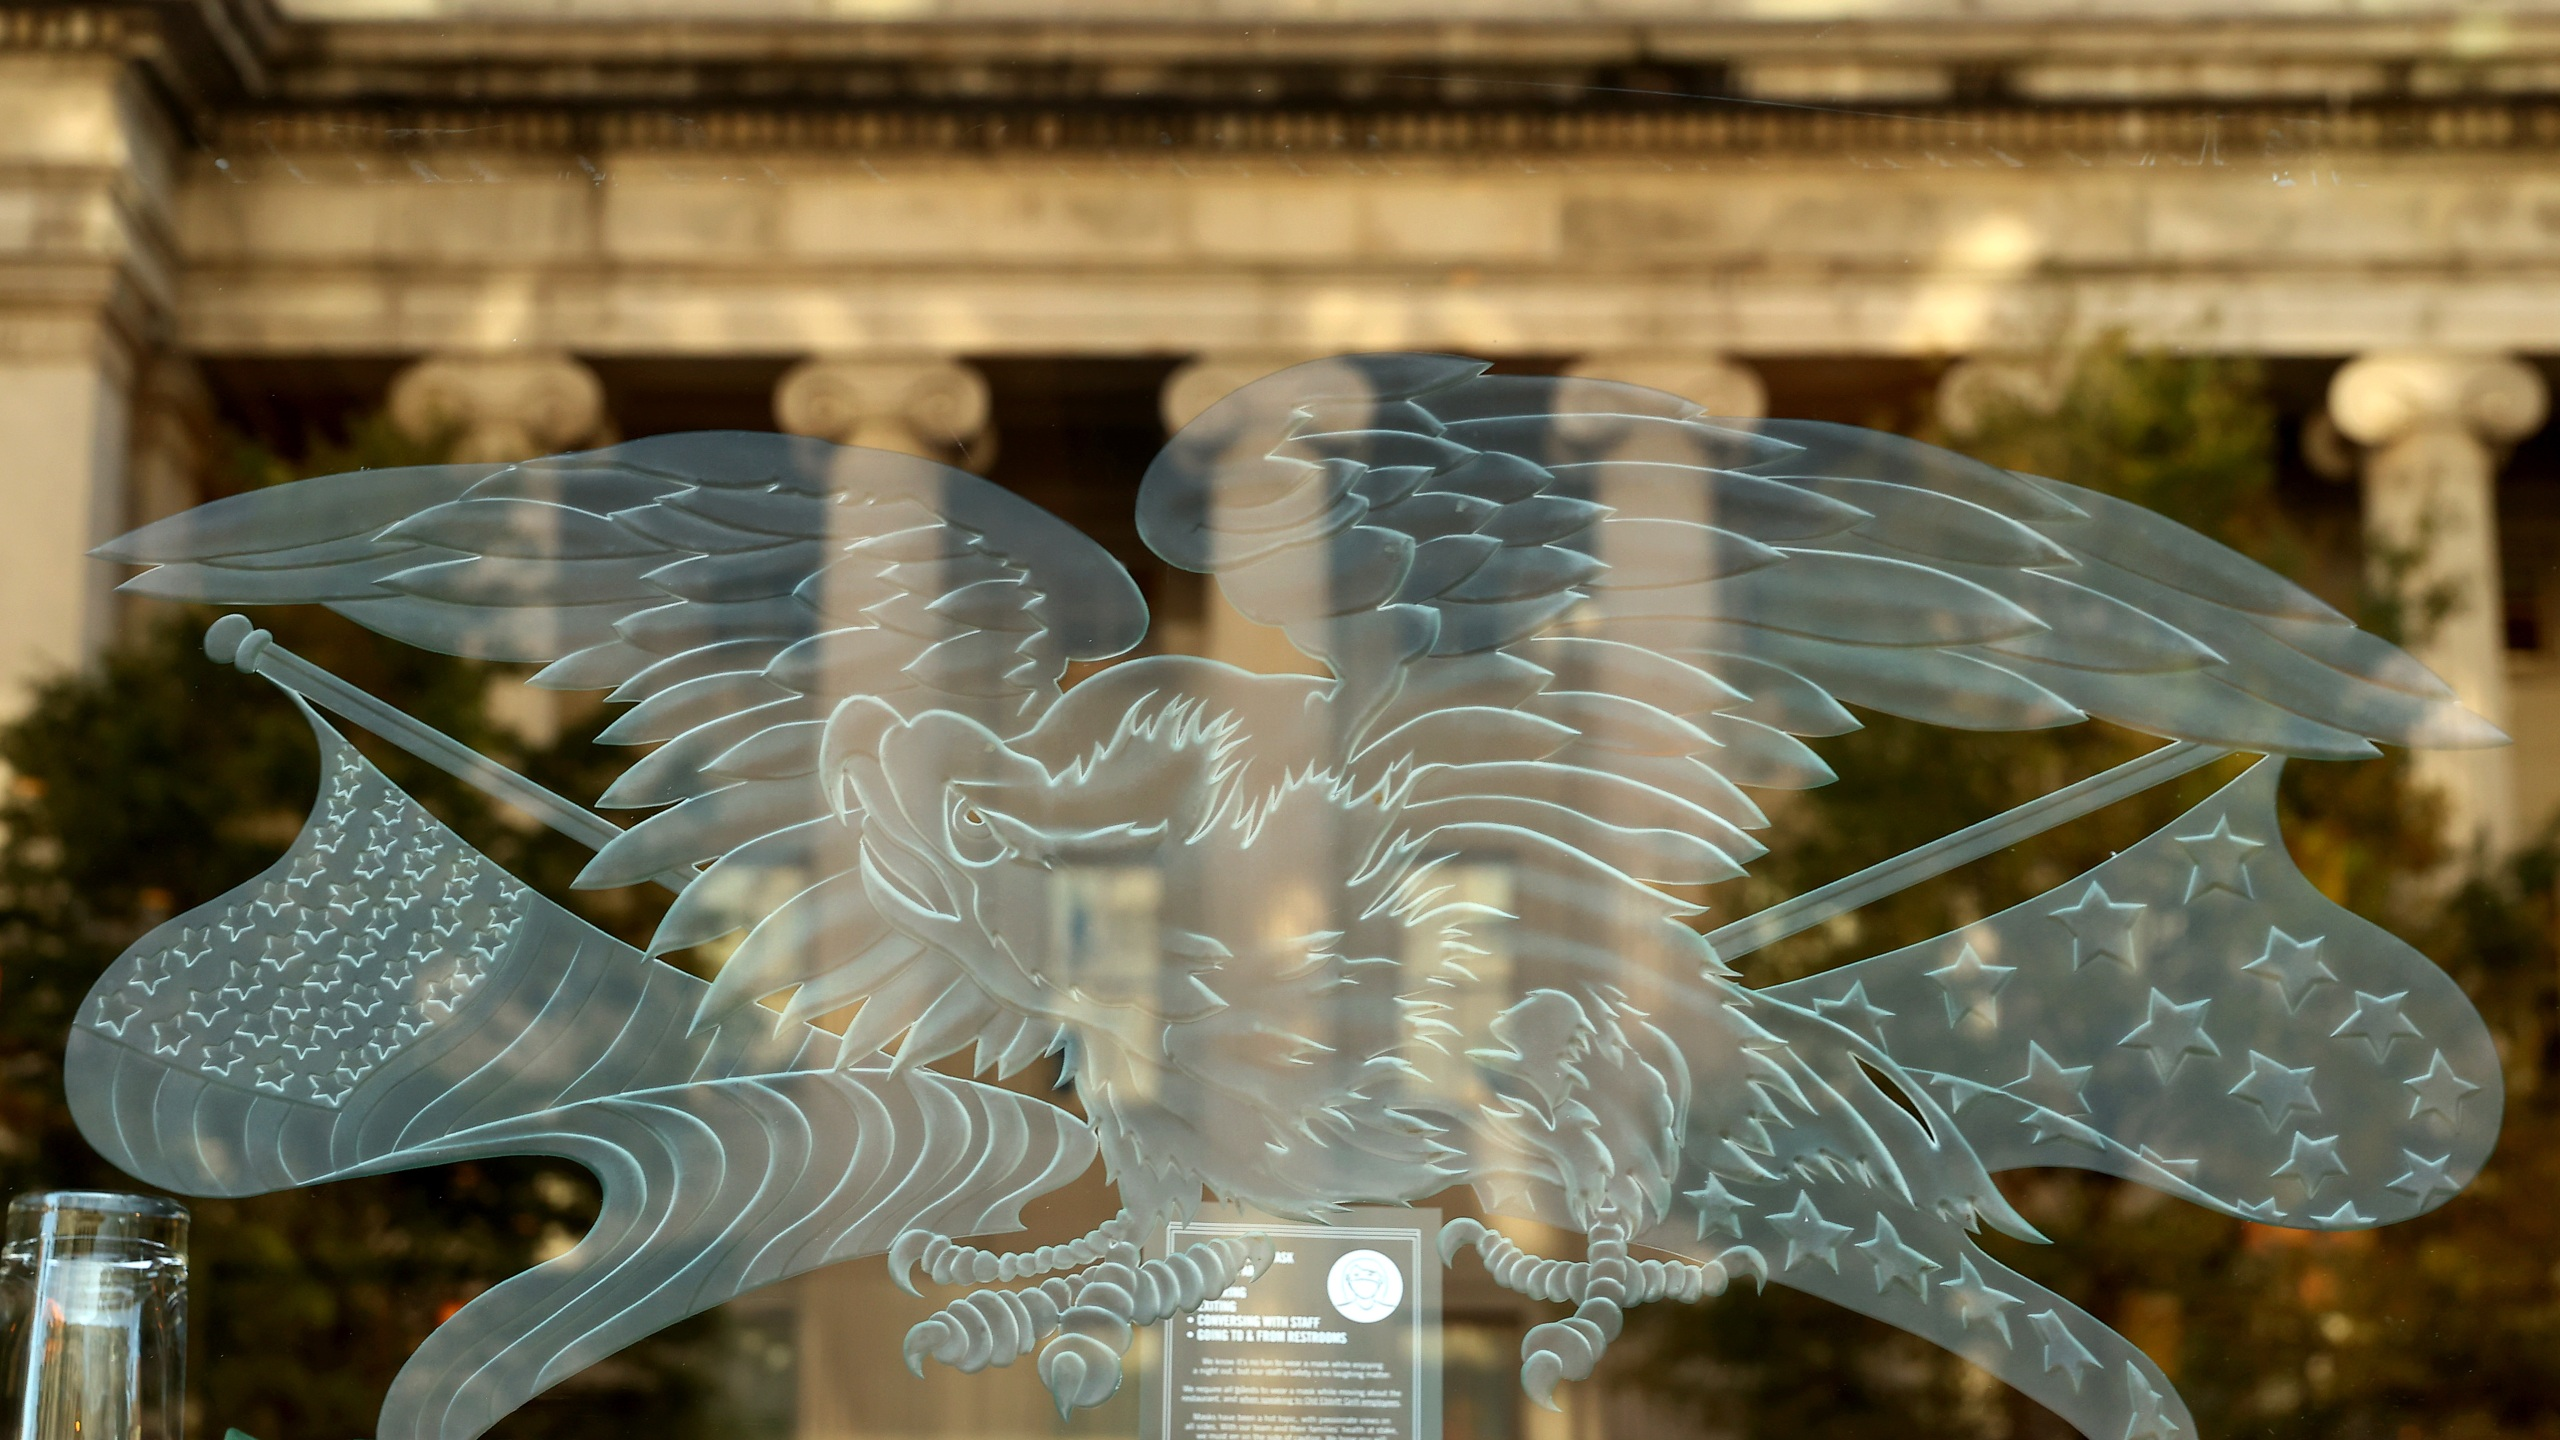 The U.S. Treasury Department is reflected in a restaurant window less than 24 hours before Election Day, on Nov. 2, 2020, in Washington, DC. (Chip Somodevilla/Getty Images)